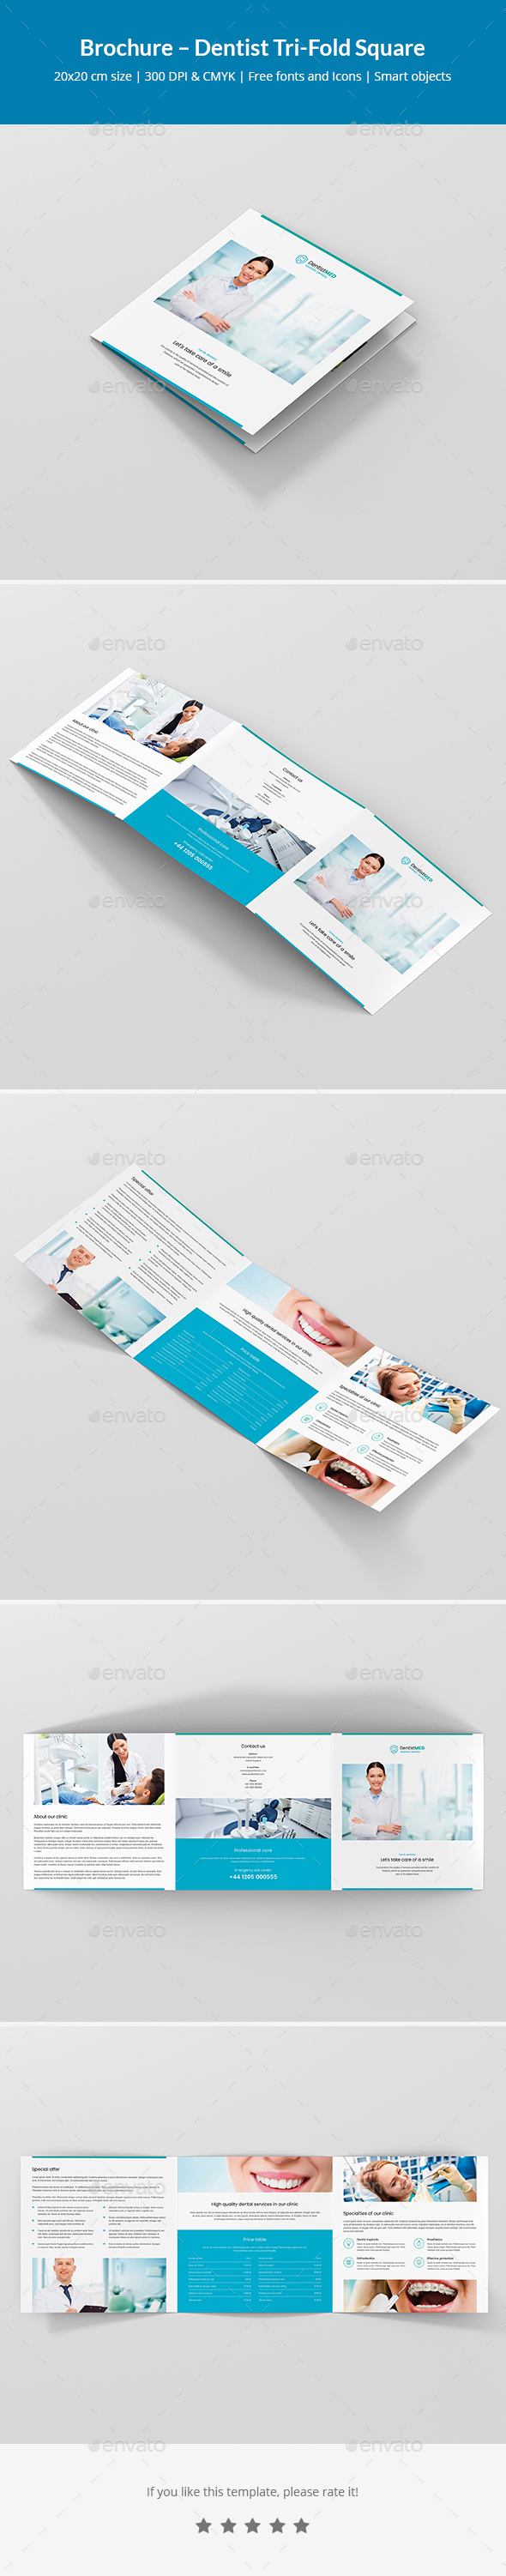 GraphicRiver Brochure Dentist Tri-Fold Square 21125977